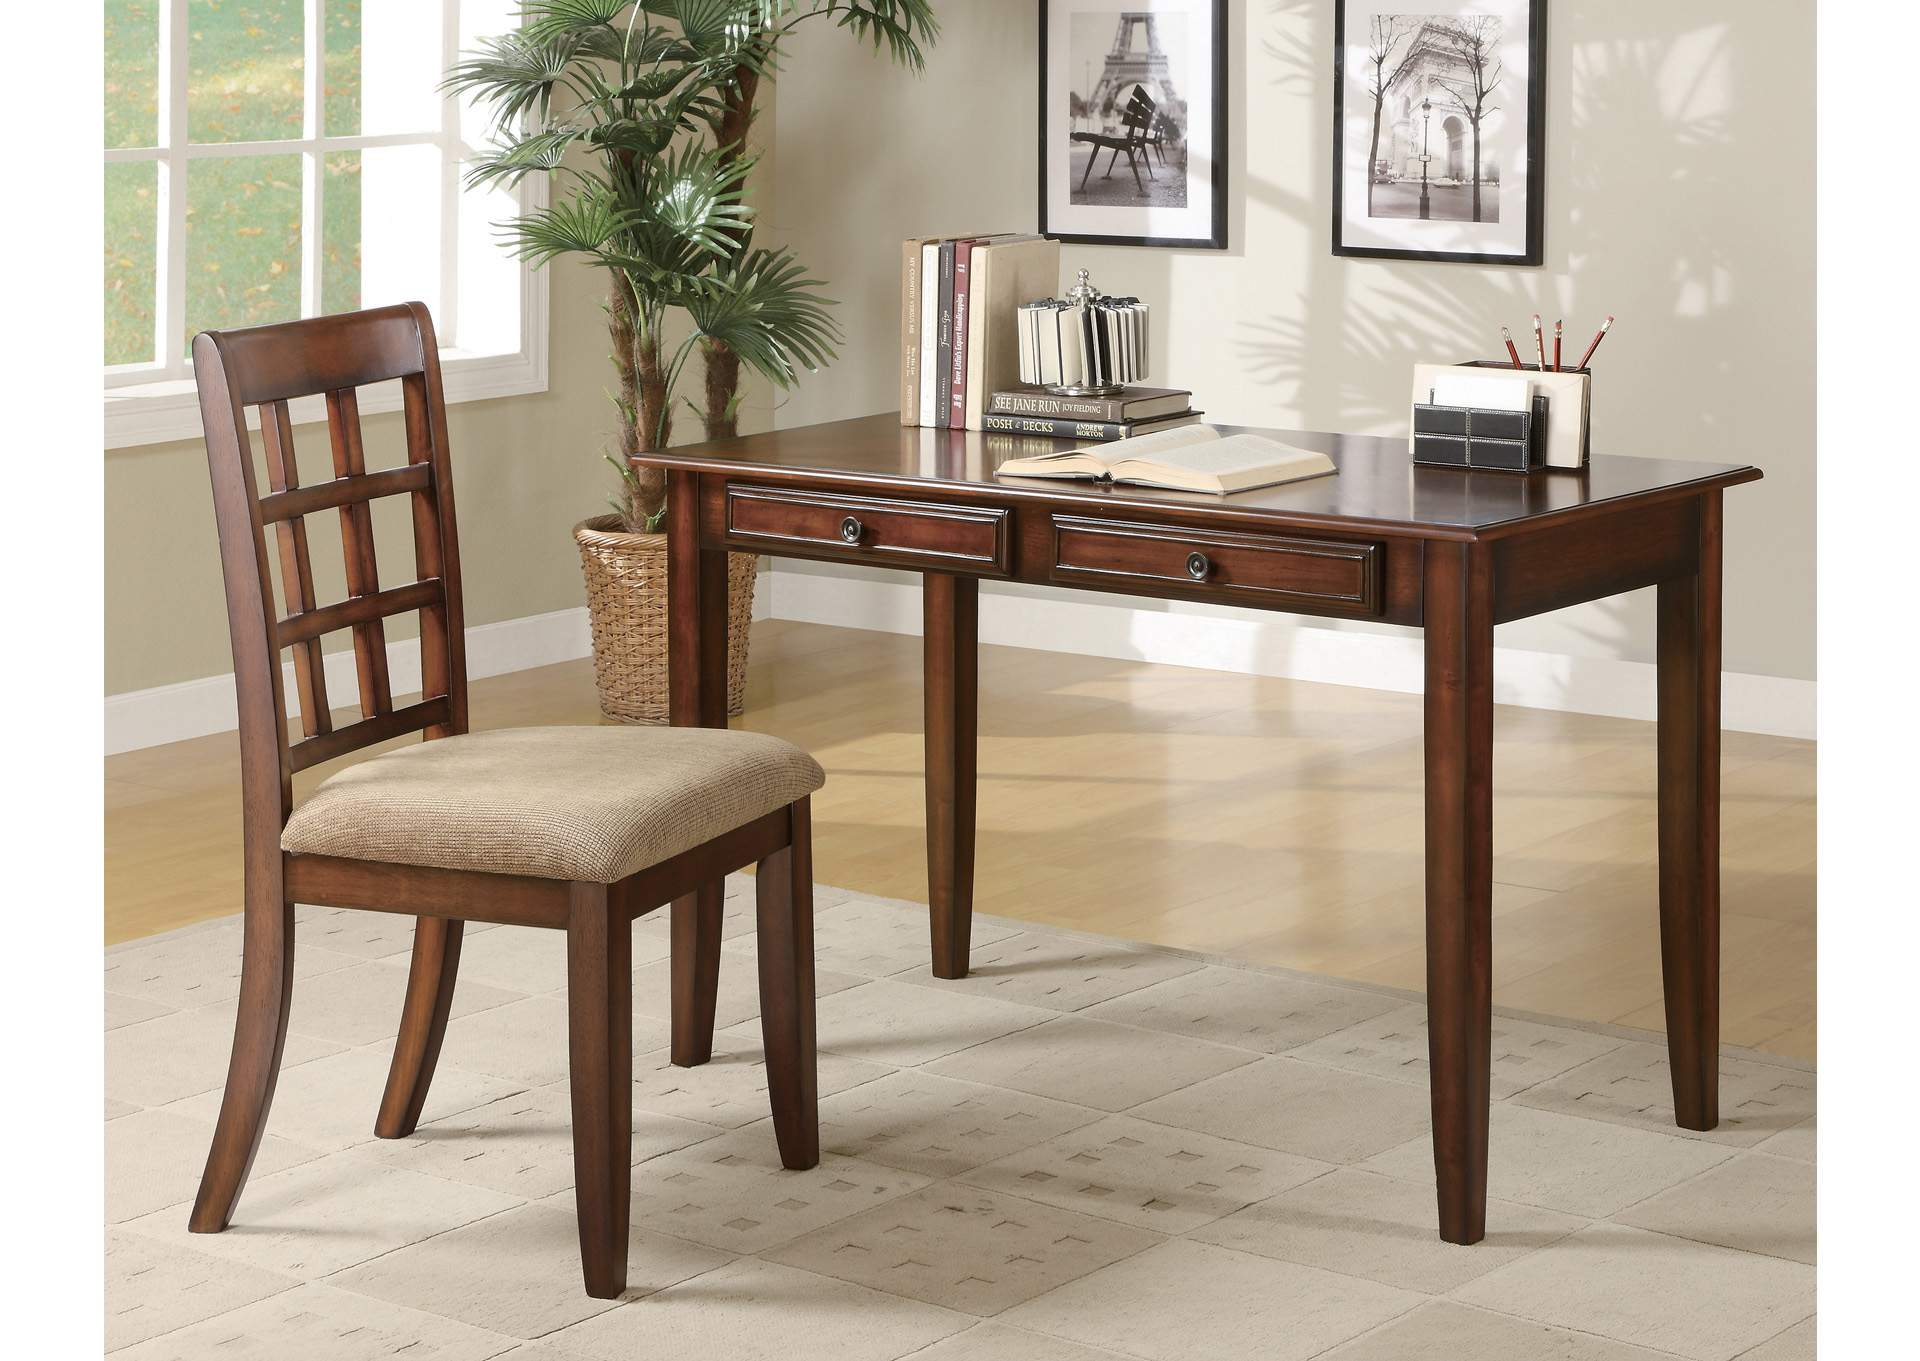 Brown Desk Set,ABF Coaster Furniture